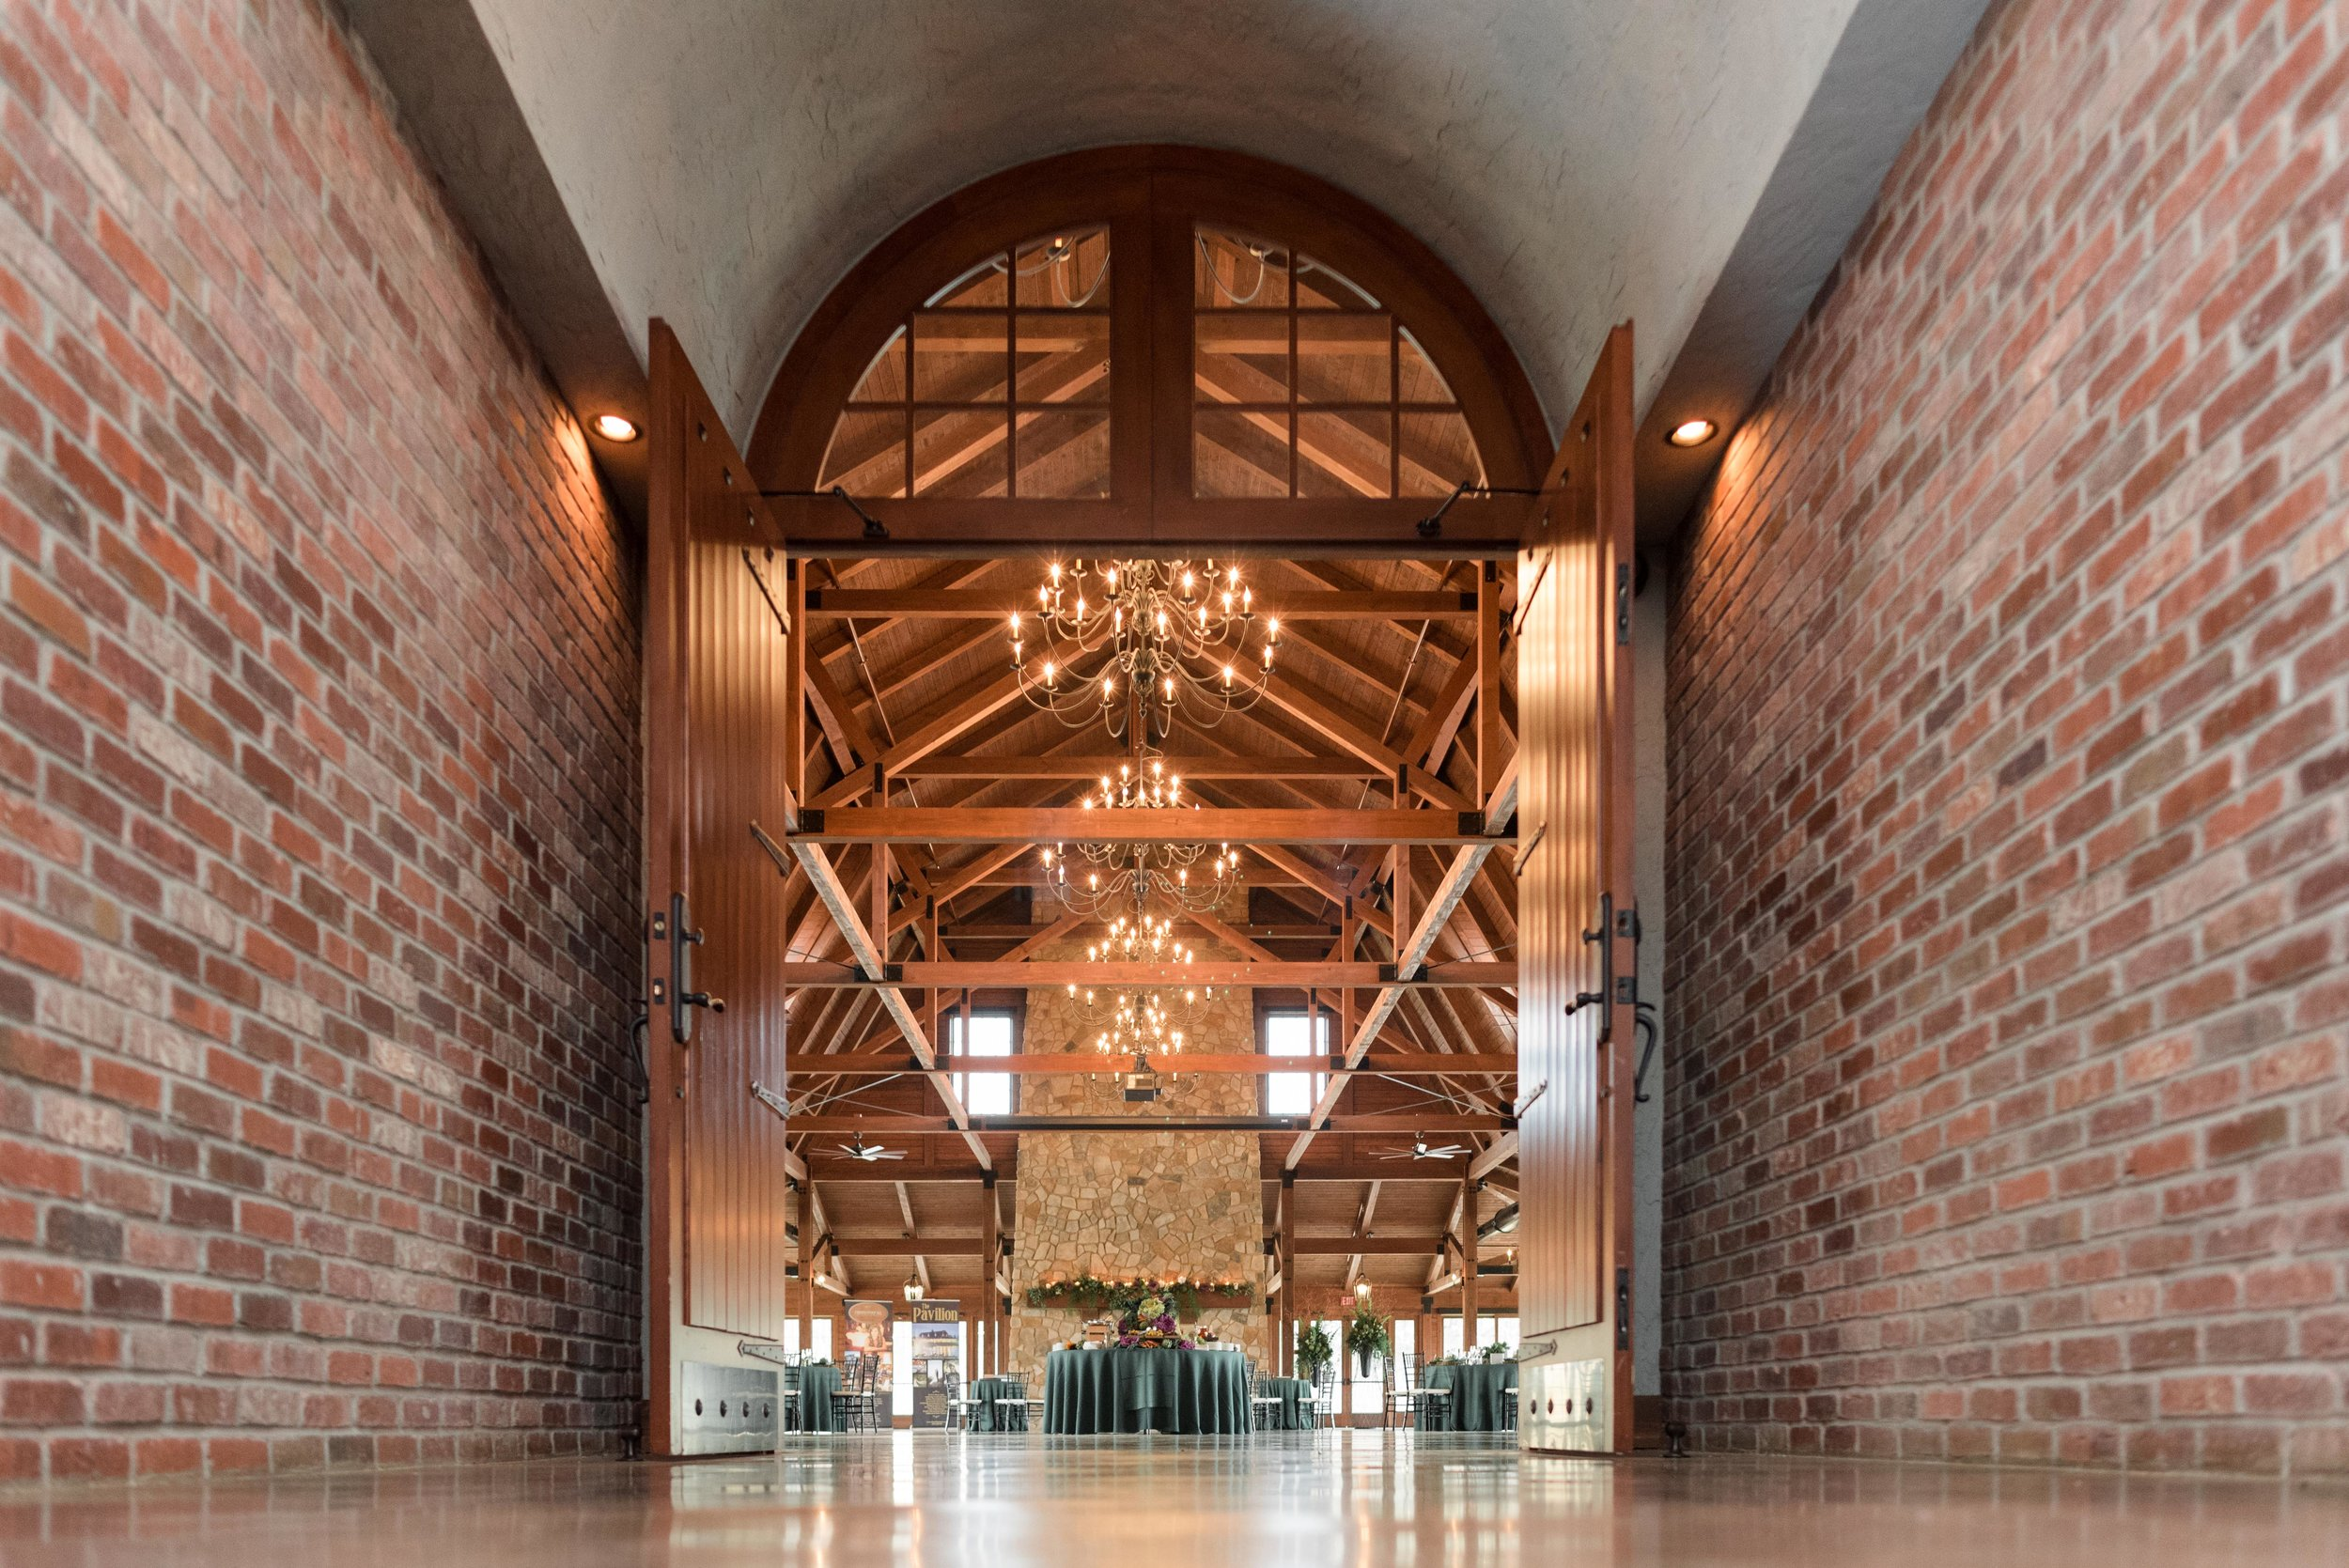 Entrance into the Pavilion with brick walls and exposed beams above with floor to ceiling stone fireplace and chandeliers beautifully displayed with florals from Event Floral